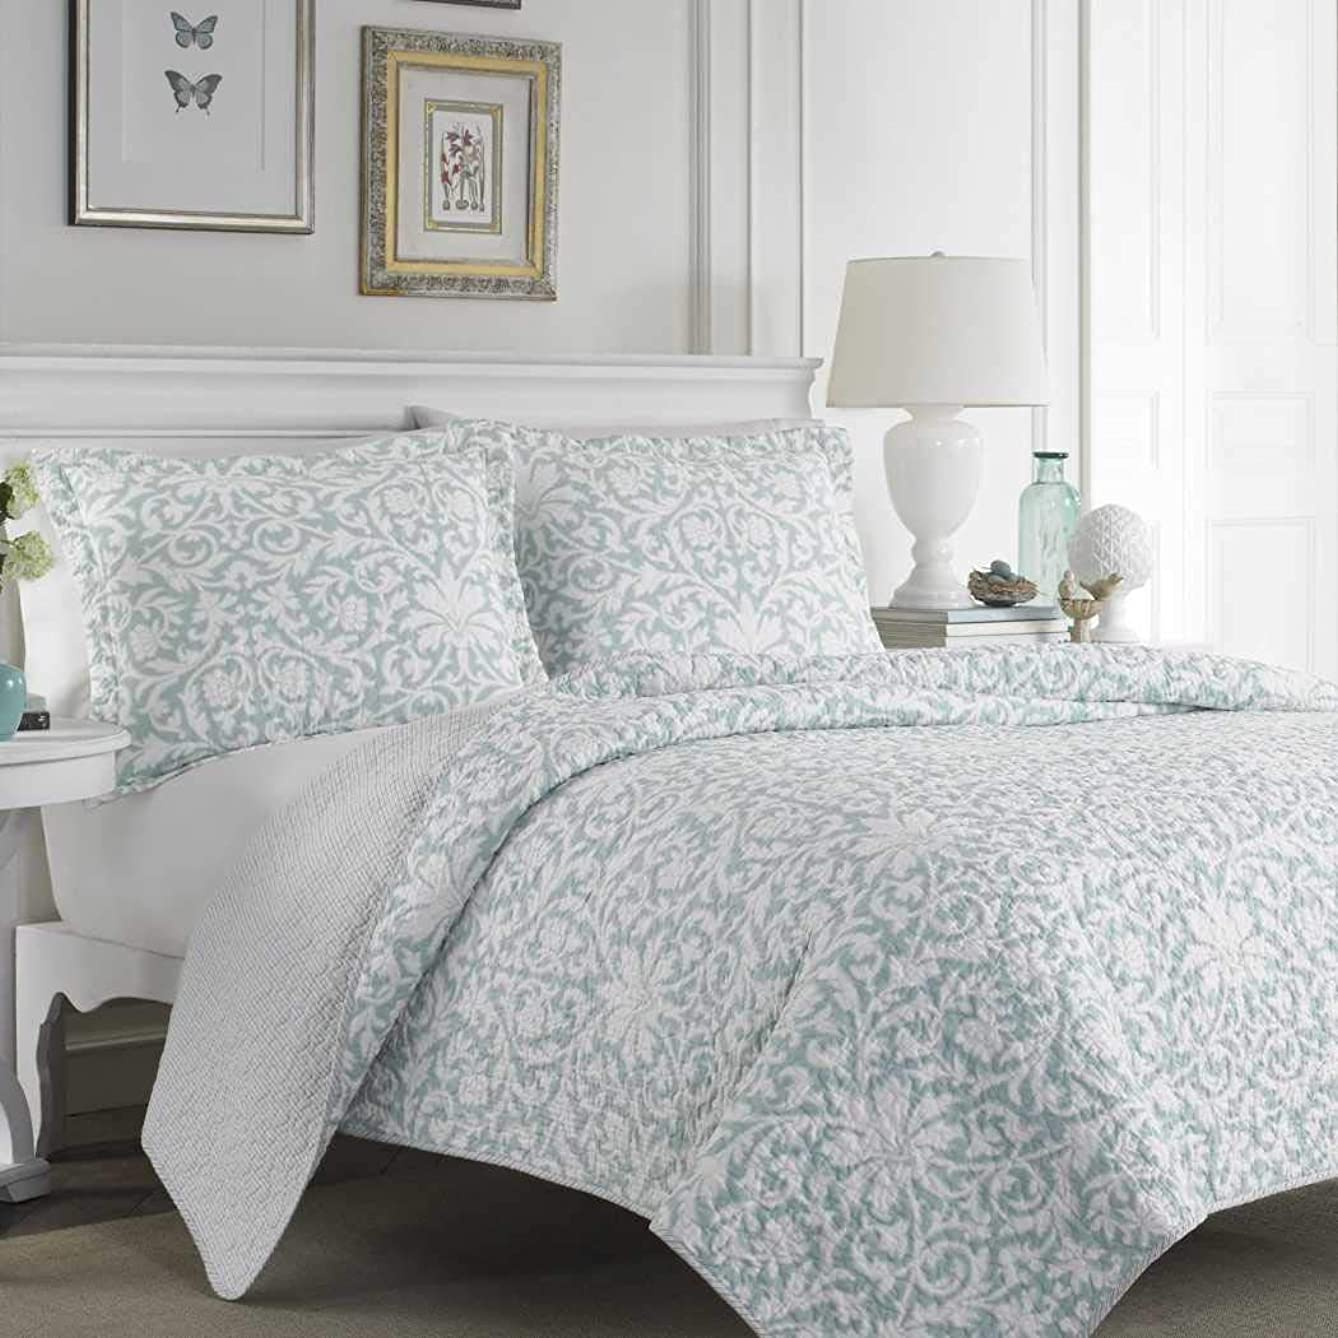 3 Pieces Modern Lightweight Quilt Set in Turquoise Floral Damask Patterns - King Size